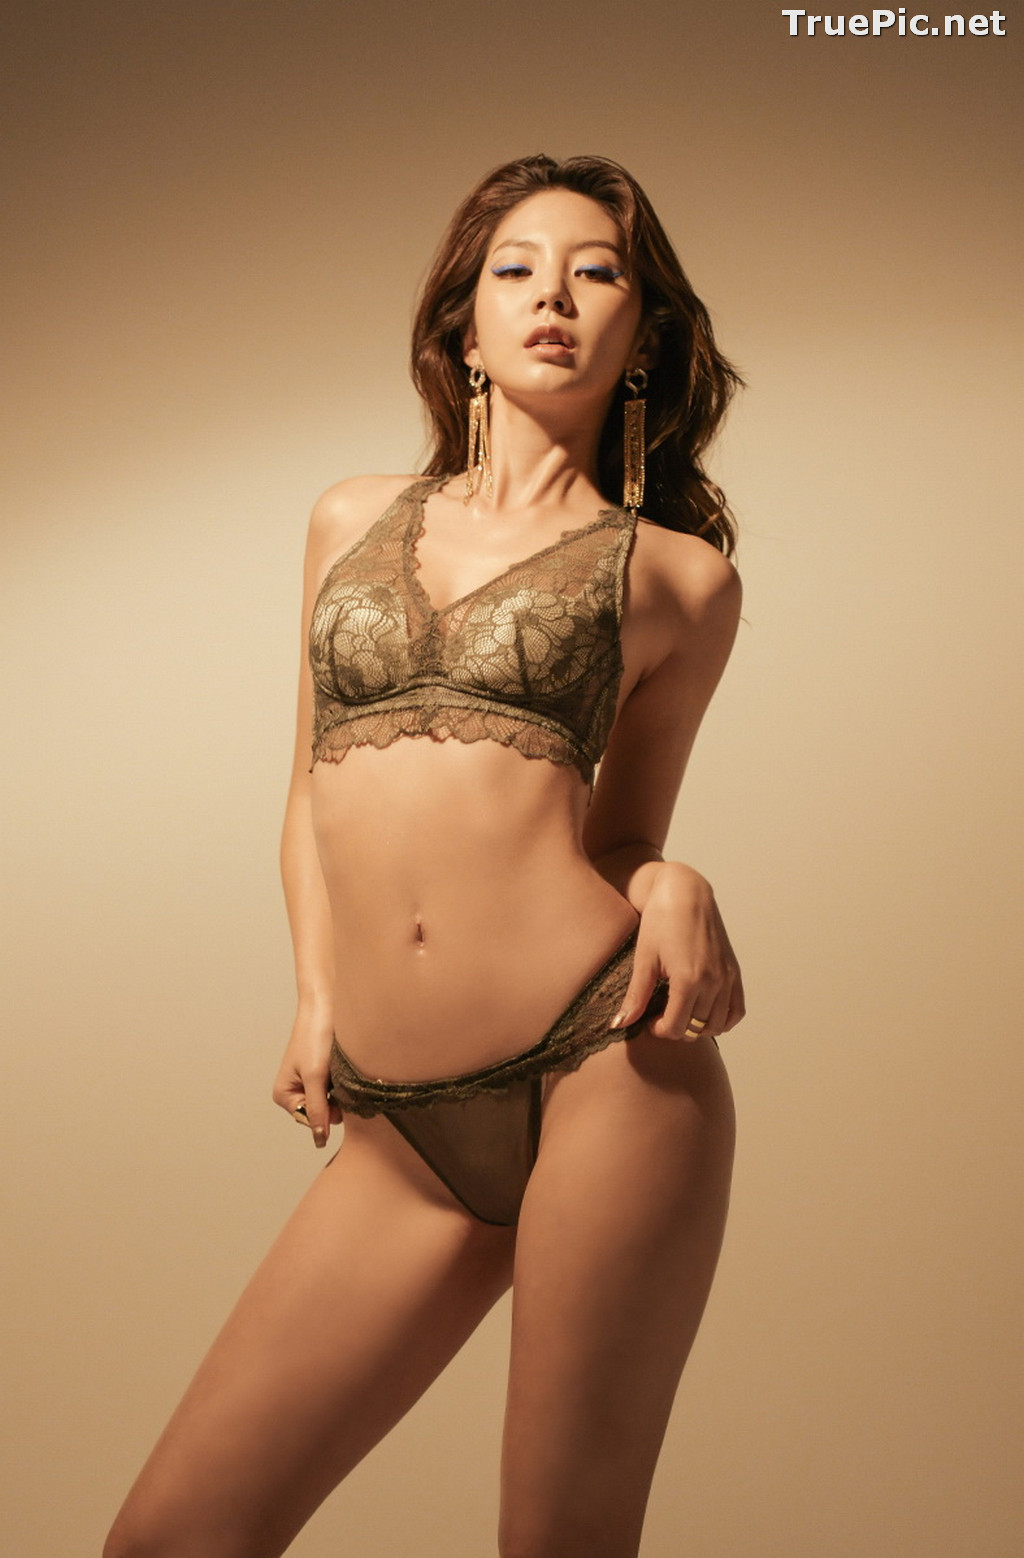 Image Korean Fashion Model - Lee Chae Eun - Soft Brown Lingerie - TruePic.net - Picture-8